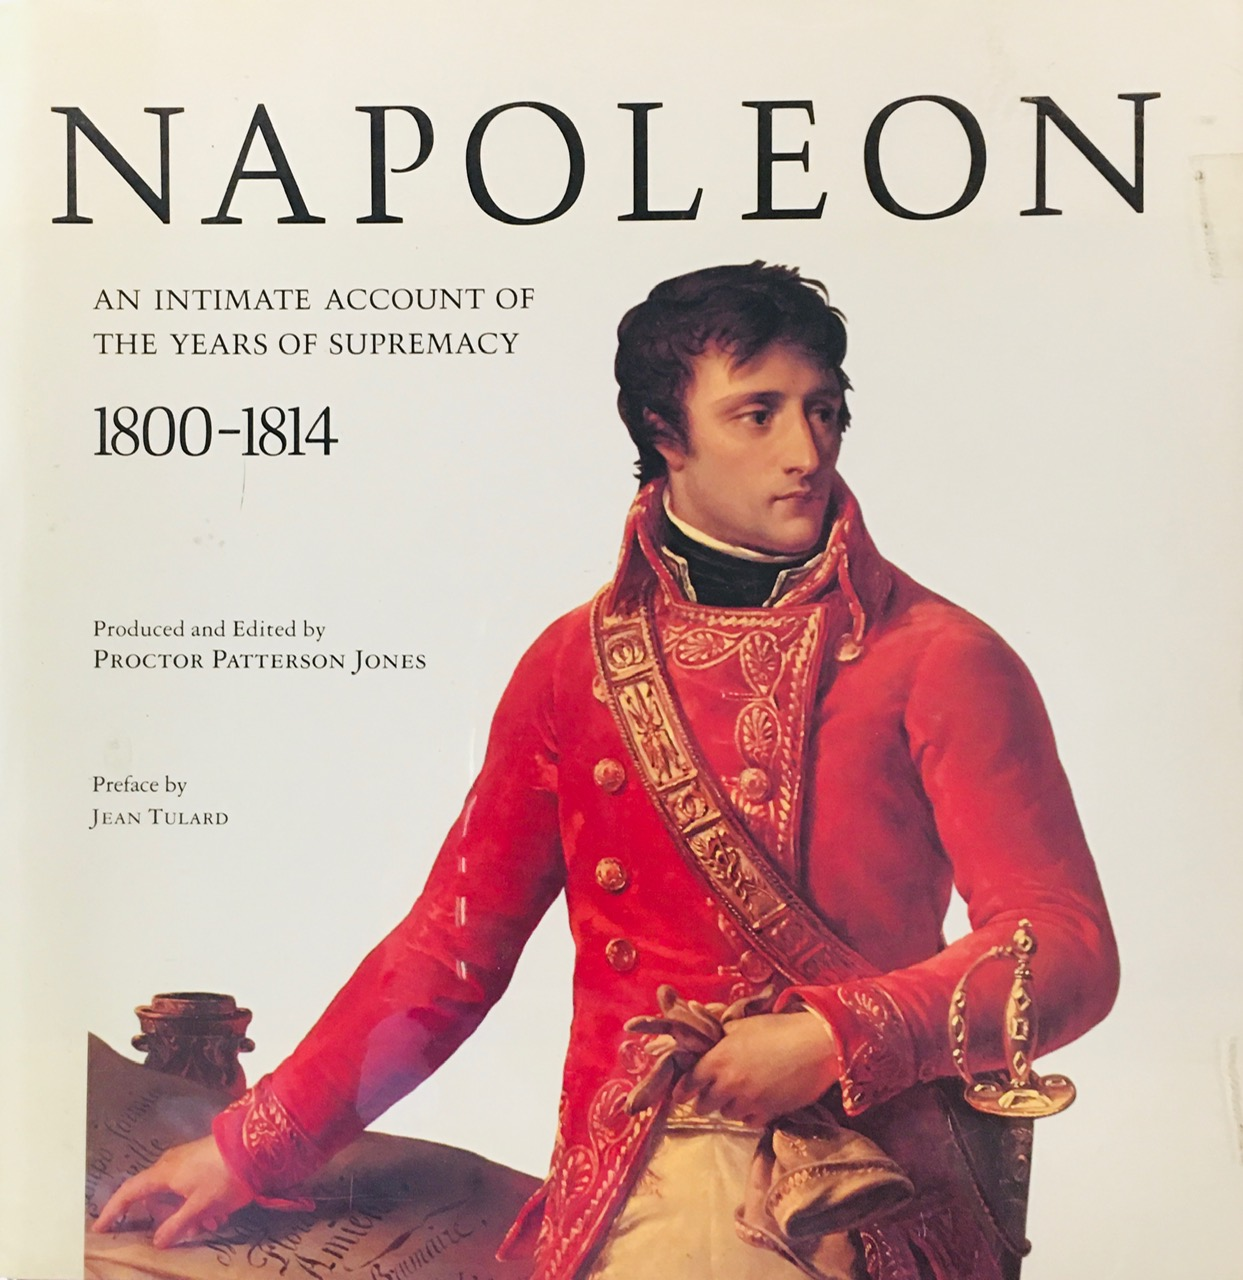 Image for Napoleon: An Intimate Account of the Years of Supremacy 1800-1814